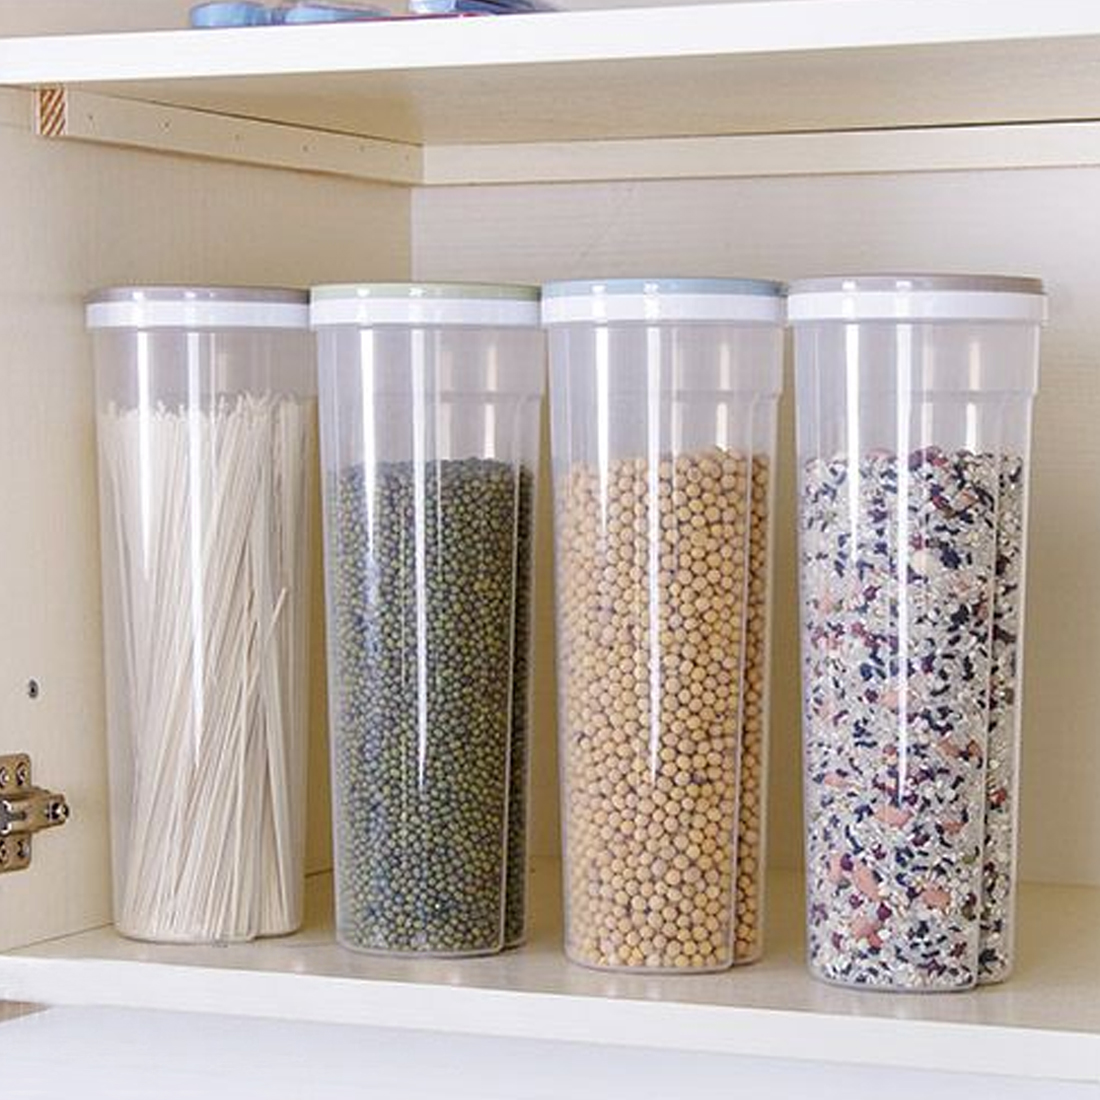 Kitchen Accessaries Noodle Bean Storage Holder Cereal Grain Box Food Container Utensils Control Hole